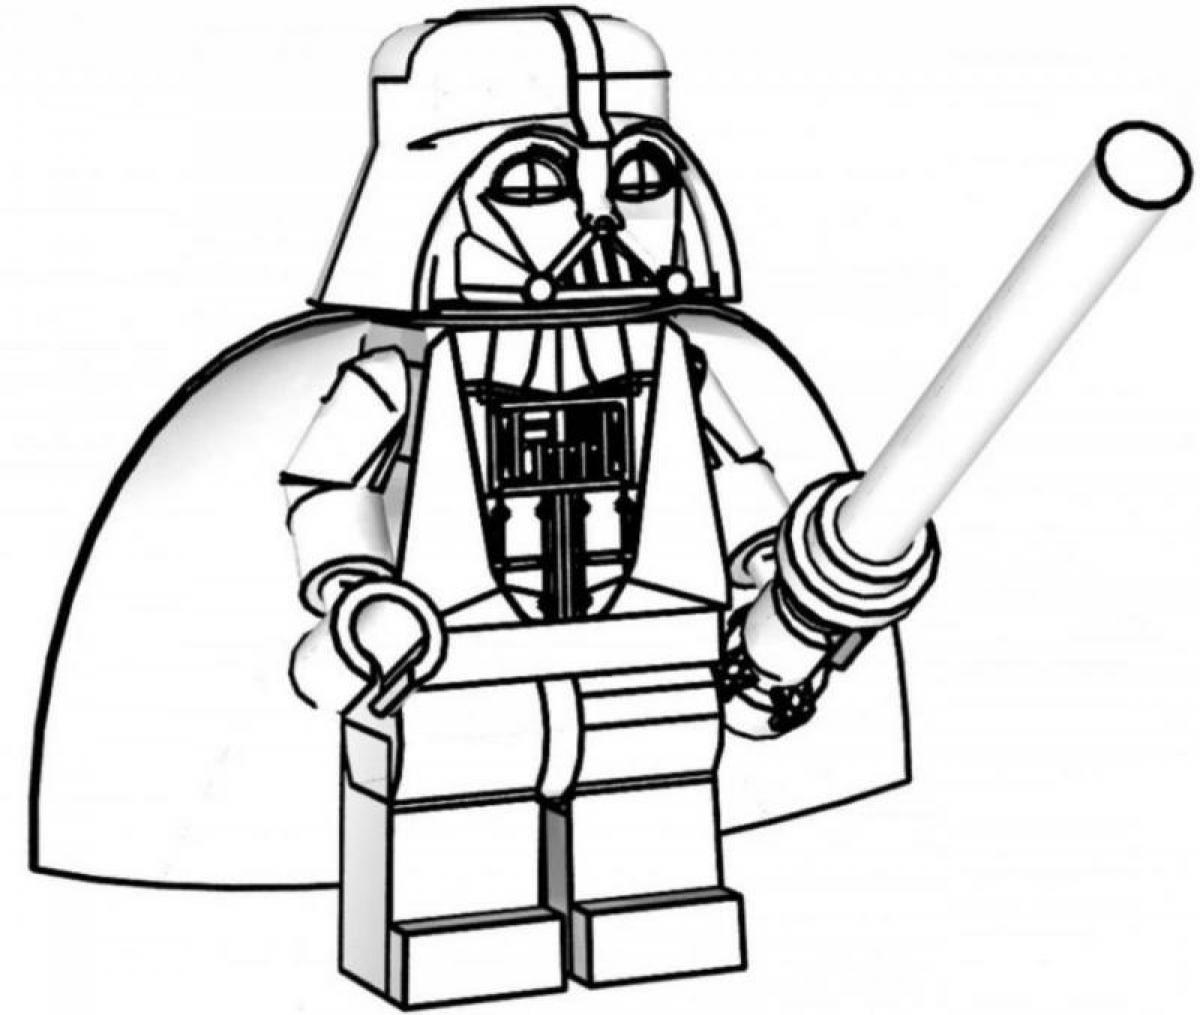 1200x1015 Darth Vader Coloring Pages Angry Birds Star Wars Luke Skywalker